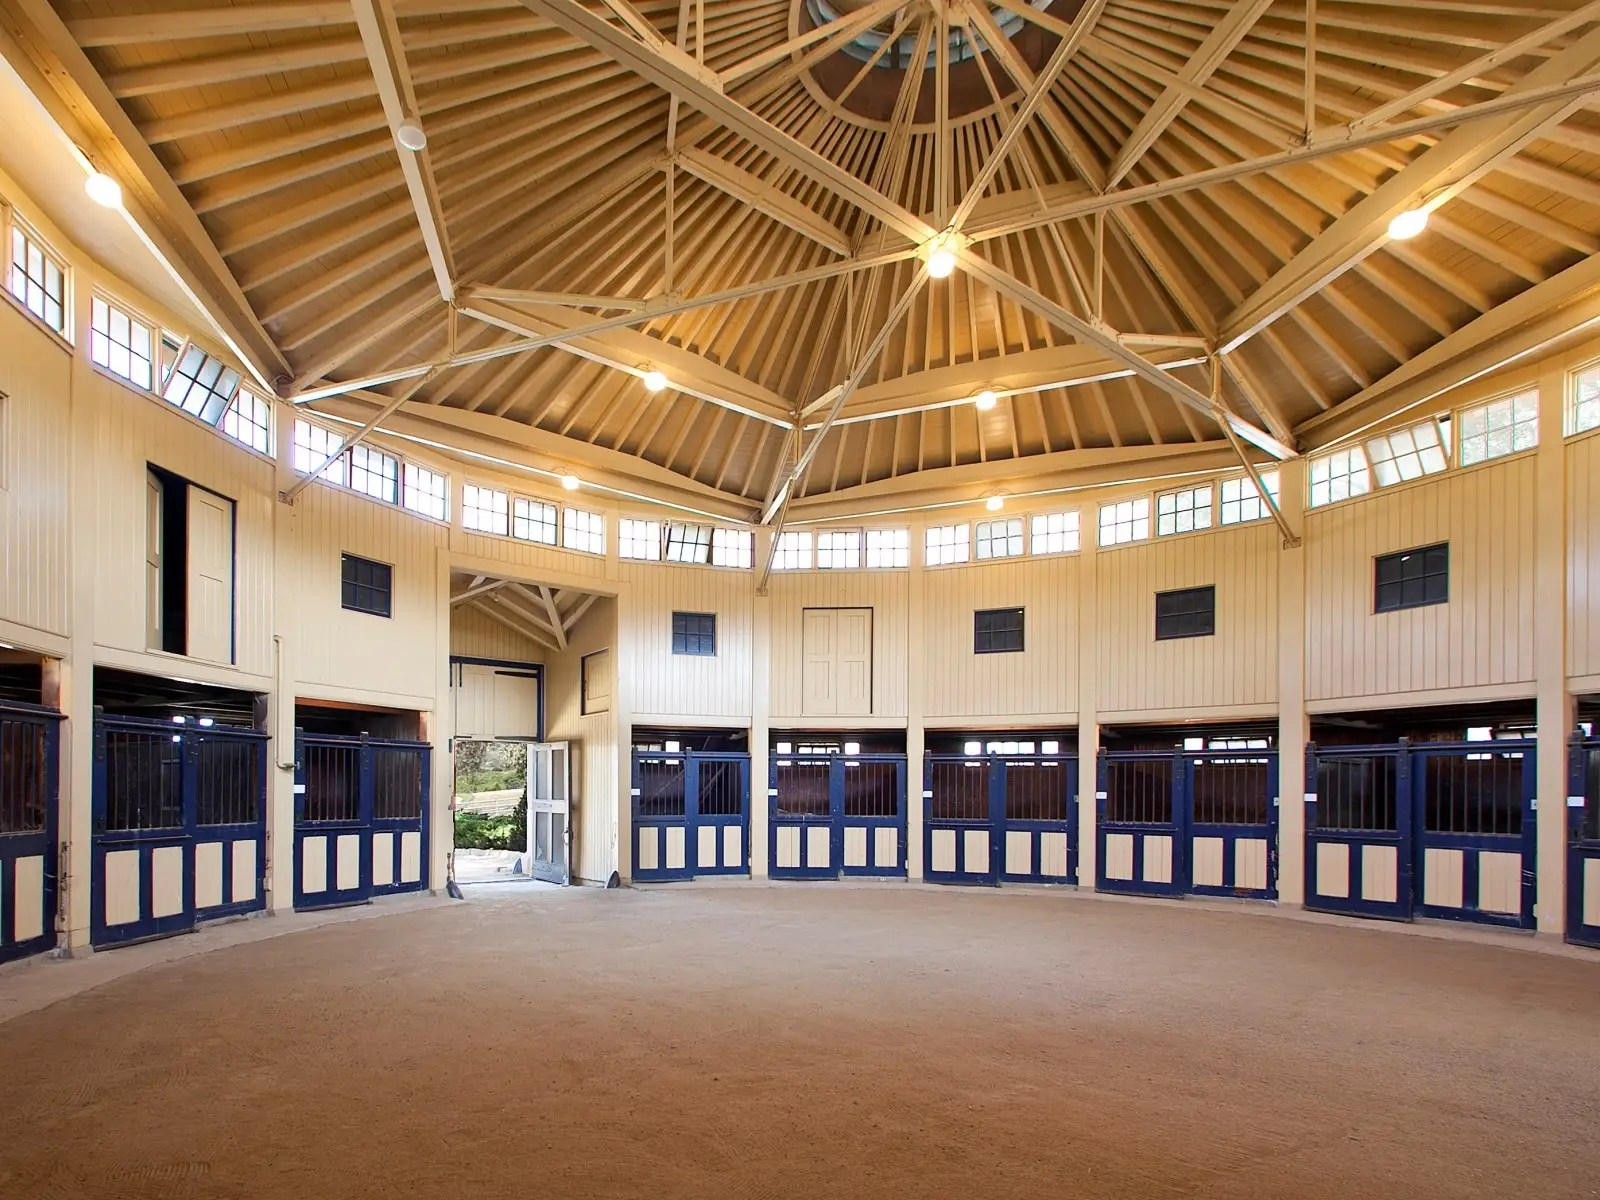 The estate has ample equestrian facilities, including this barn and stable complex. At one time, there were over 30 horses on the property.